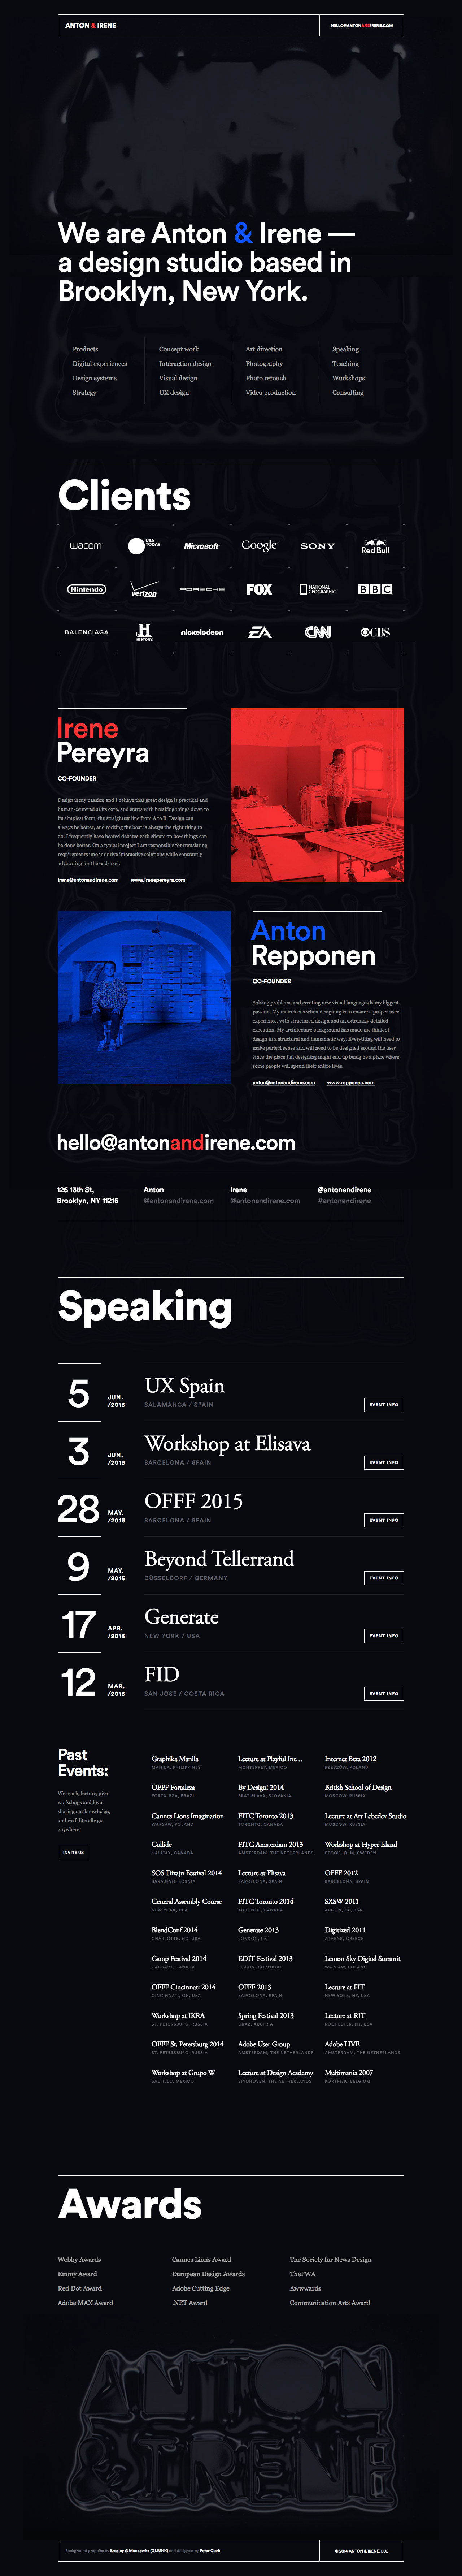 Anton & Irene Website Screenshot